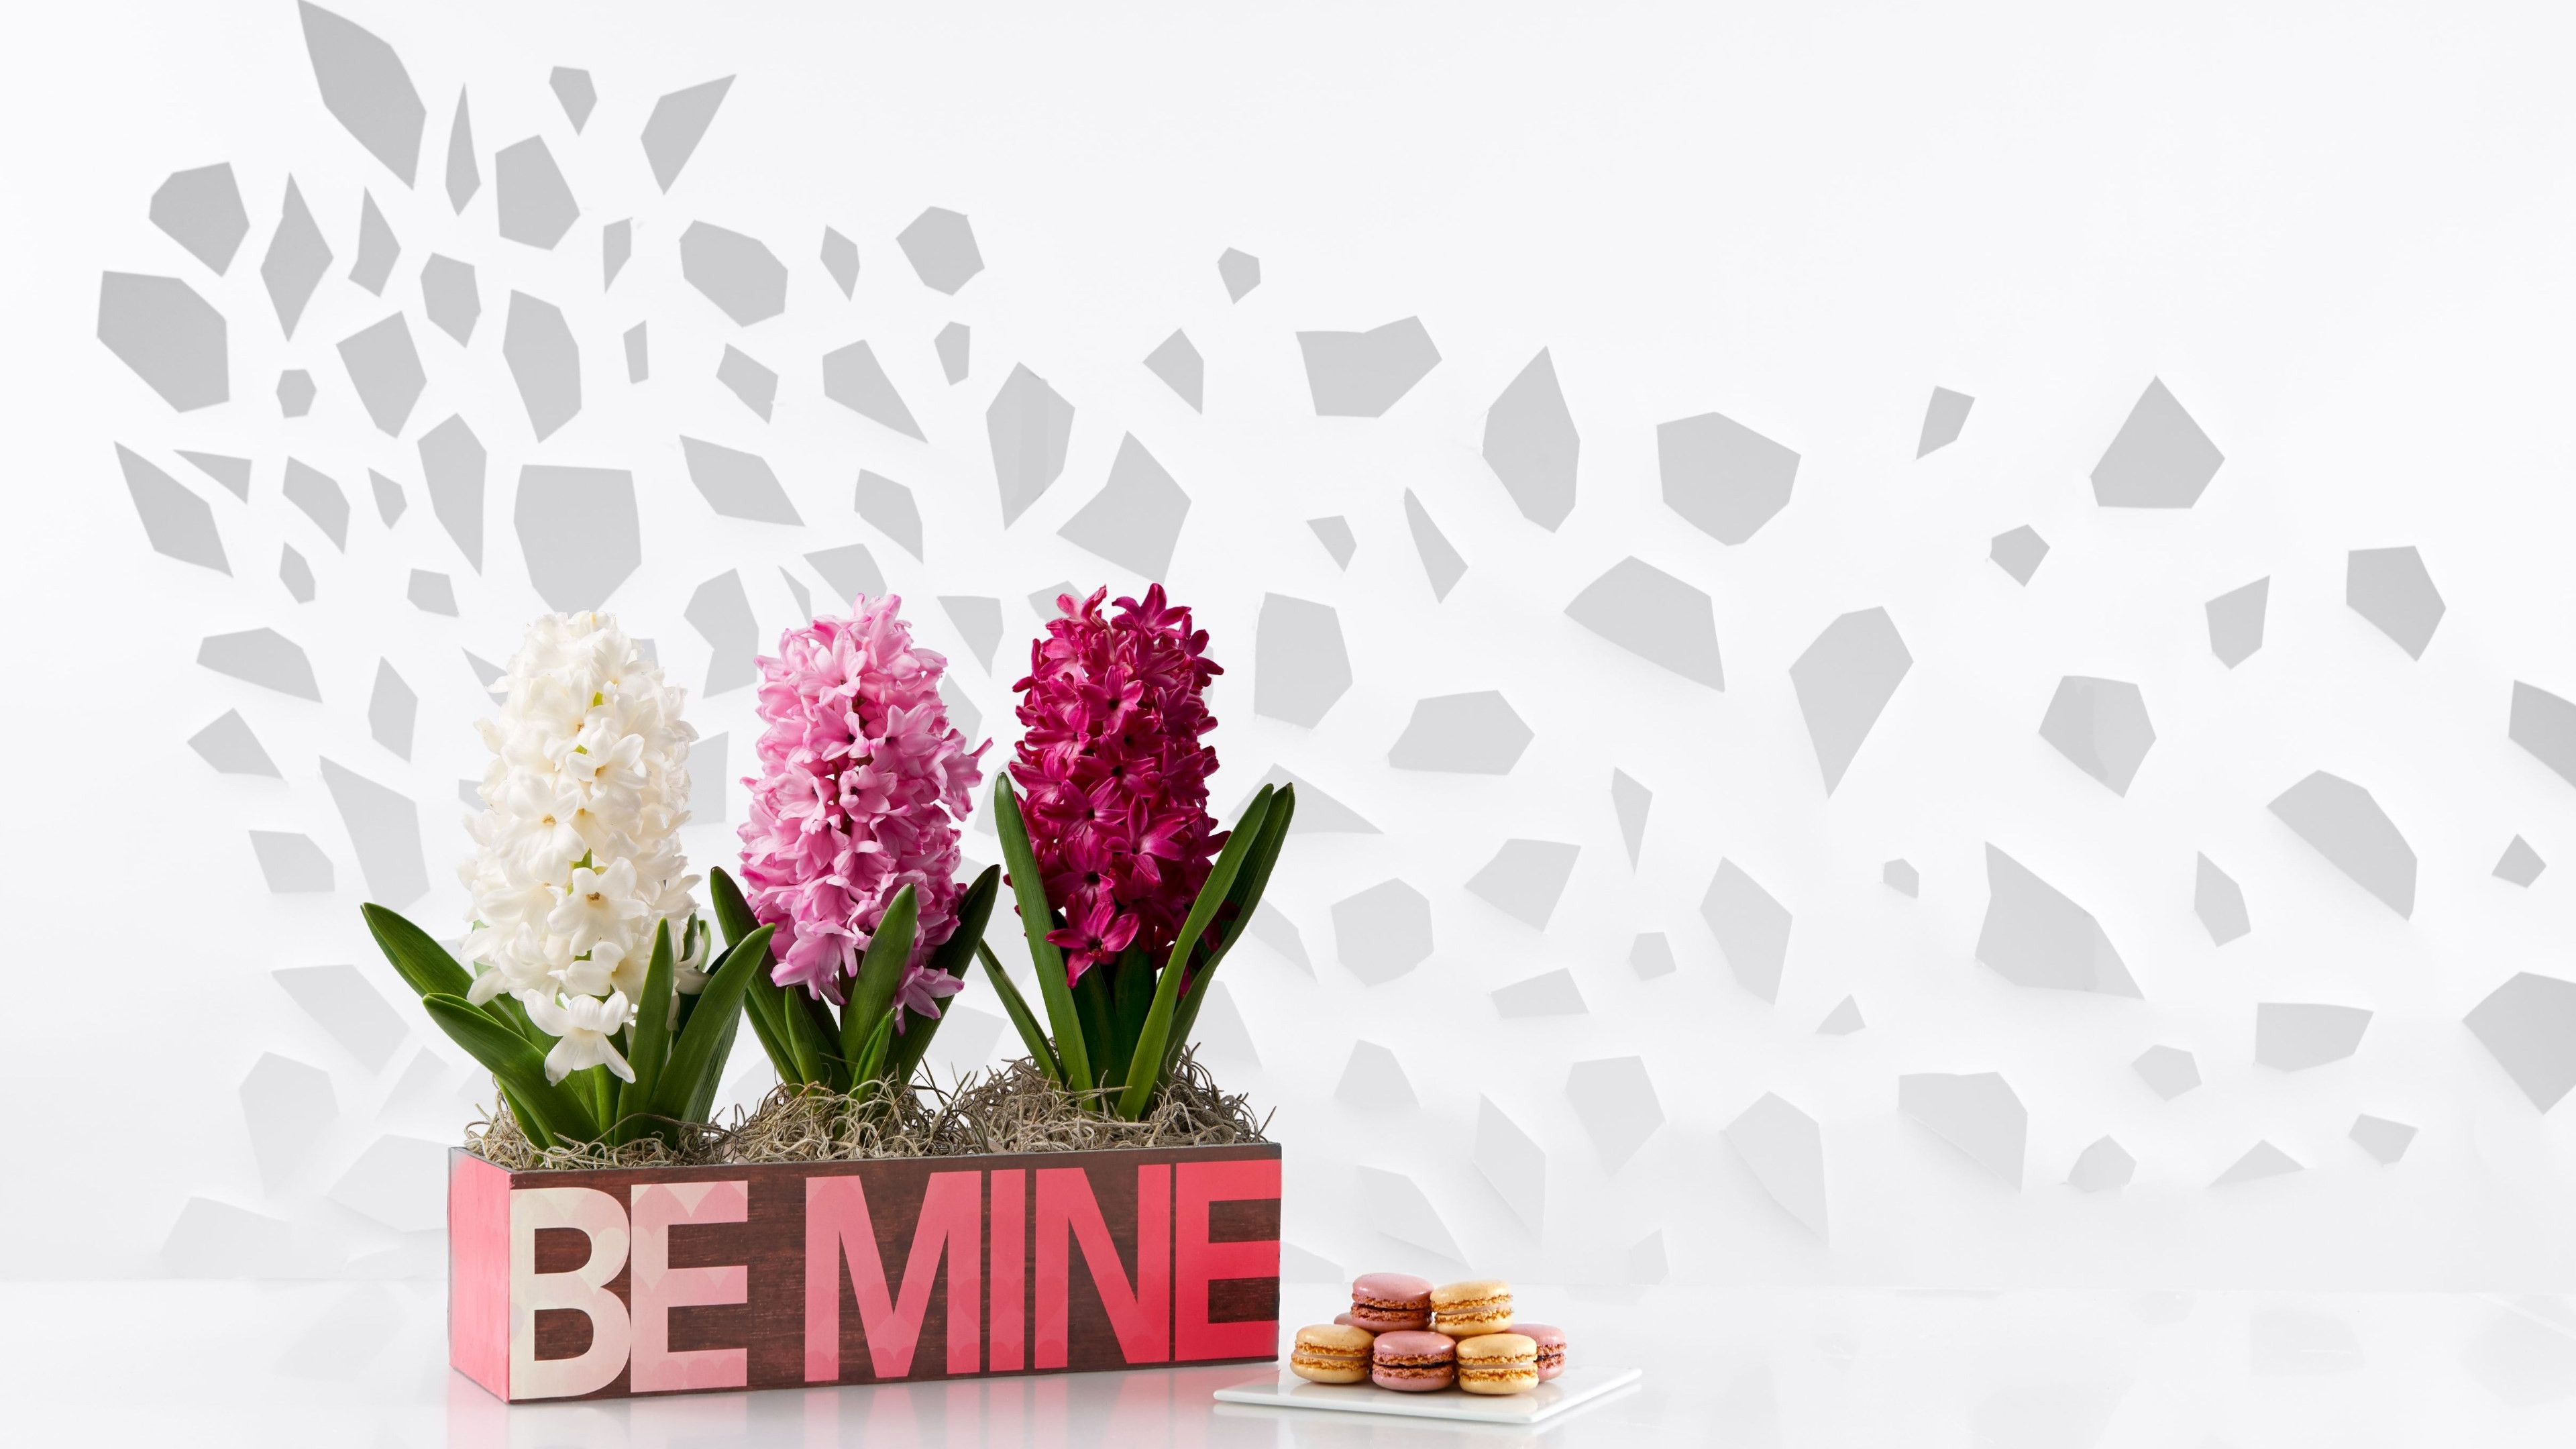 Flowers, be mine, cookies | 3840x2160 wallpaper